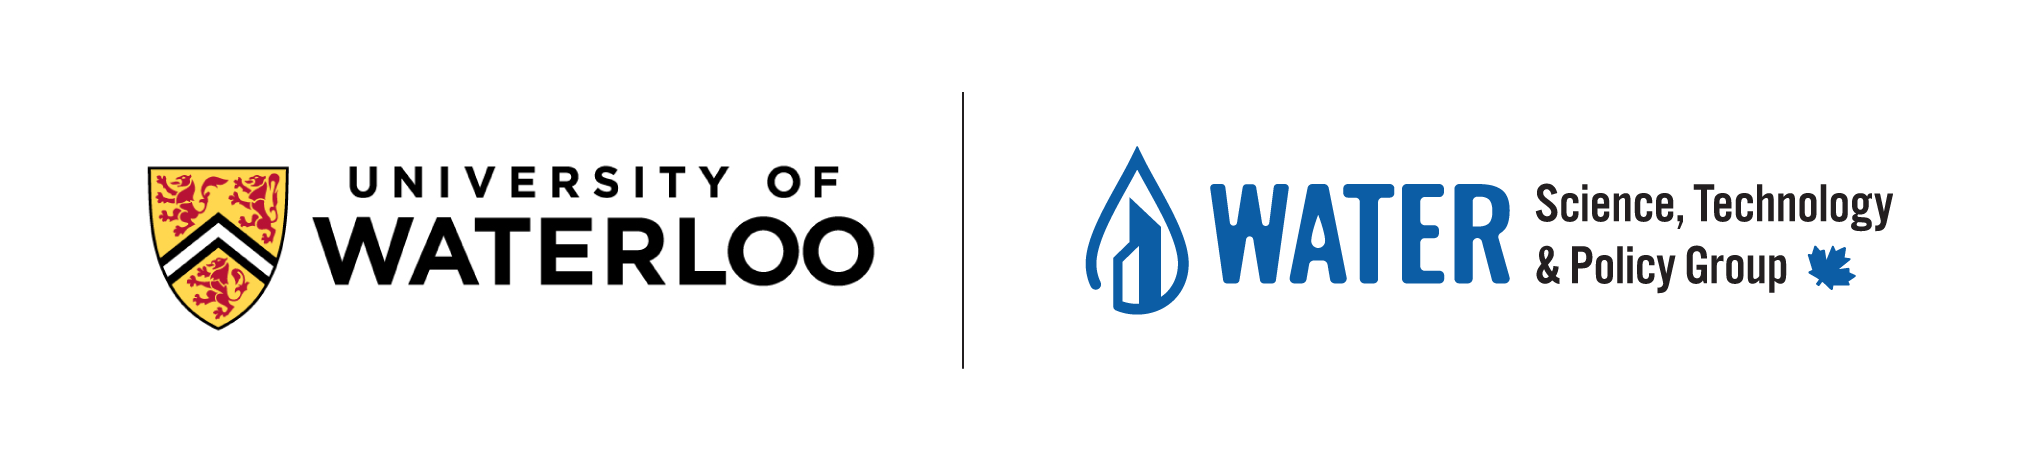 Water technology service for municipalities brand identity logo water drop with buildings university of waterloo